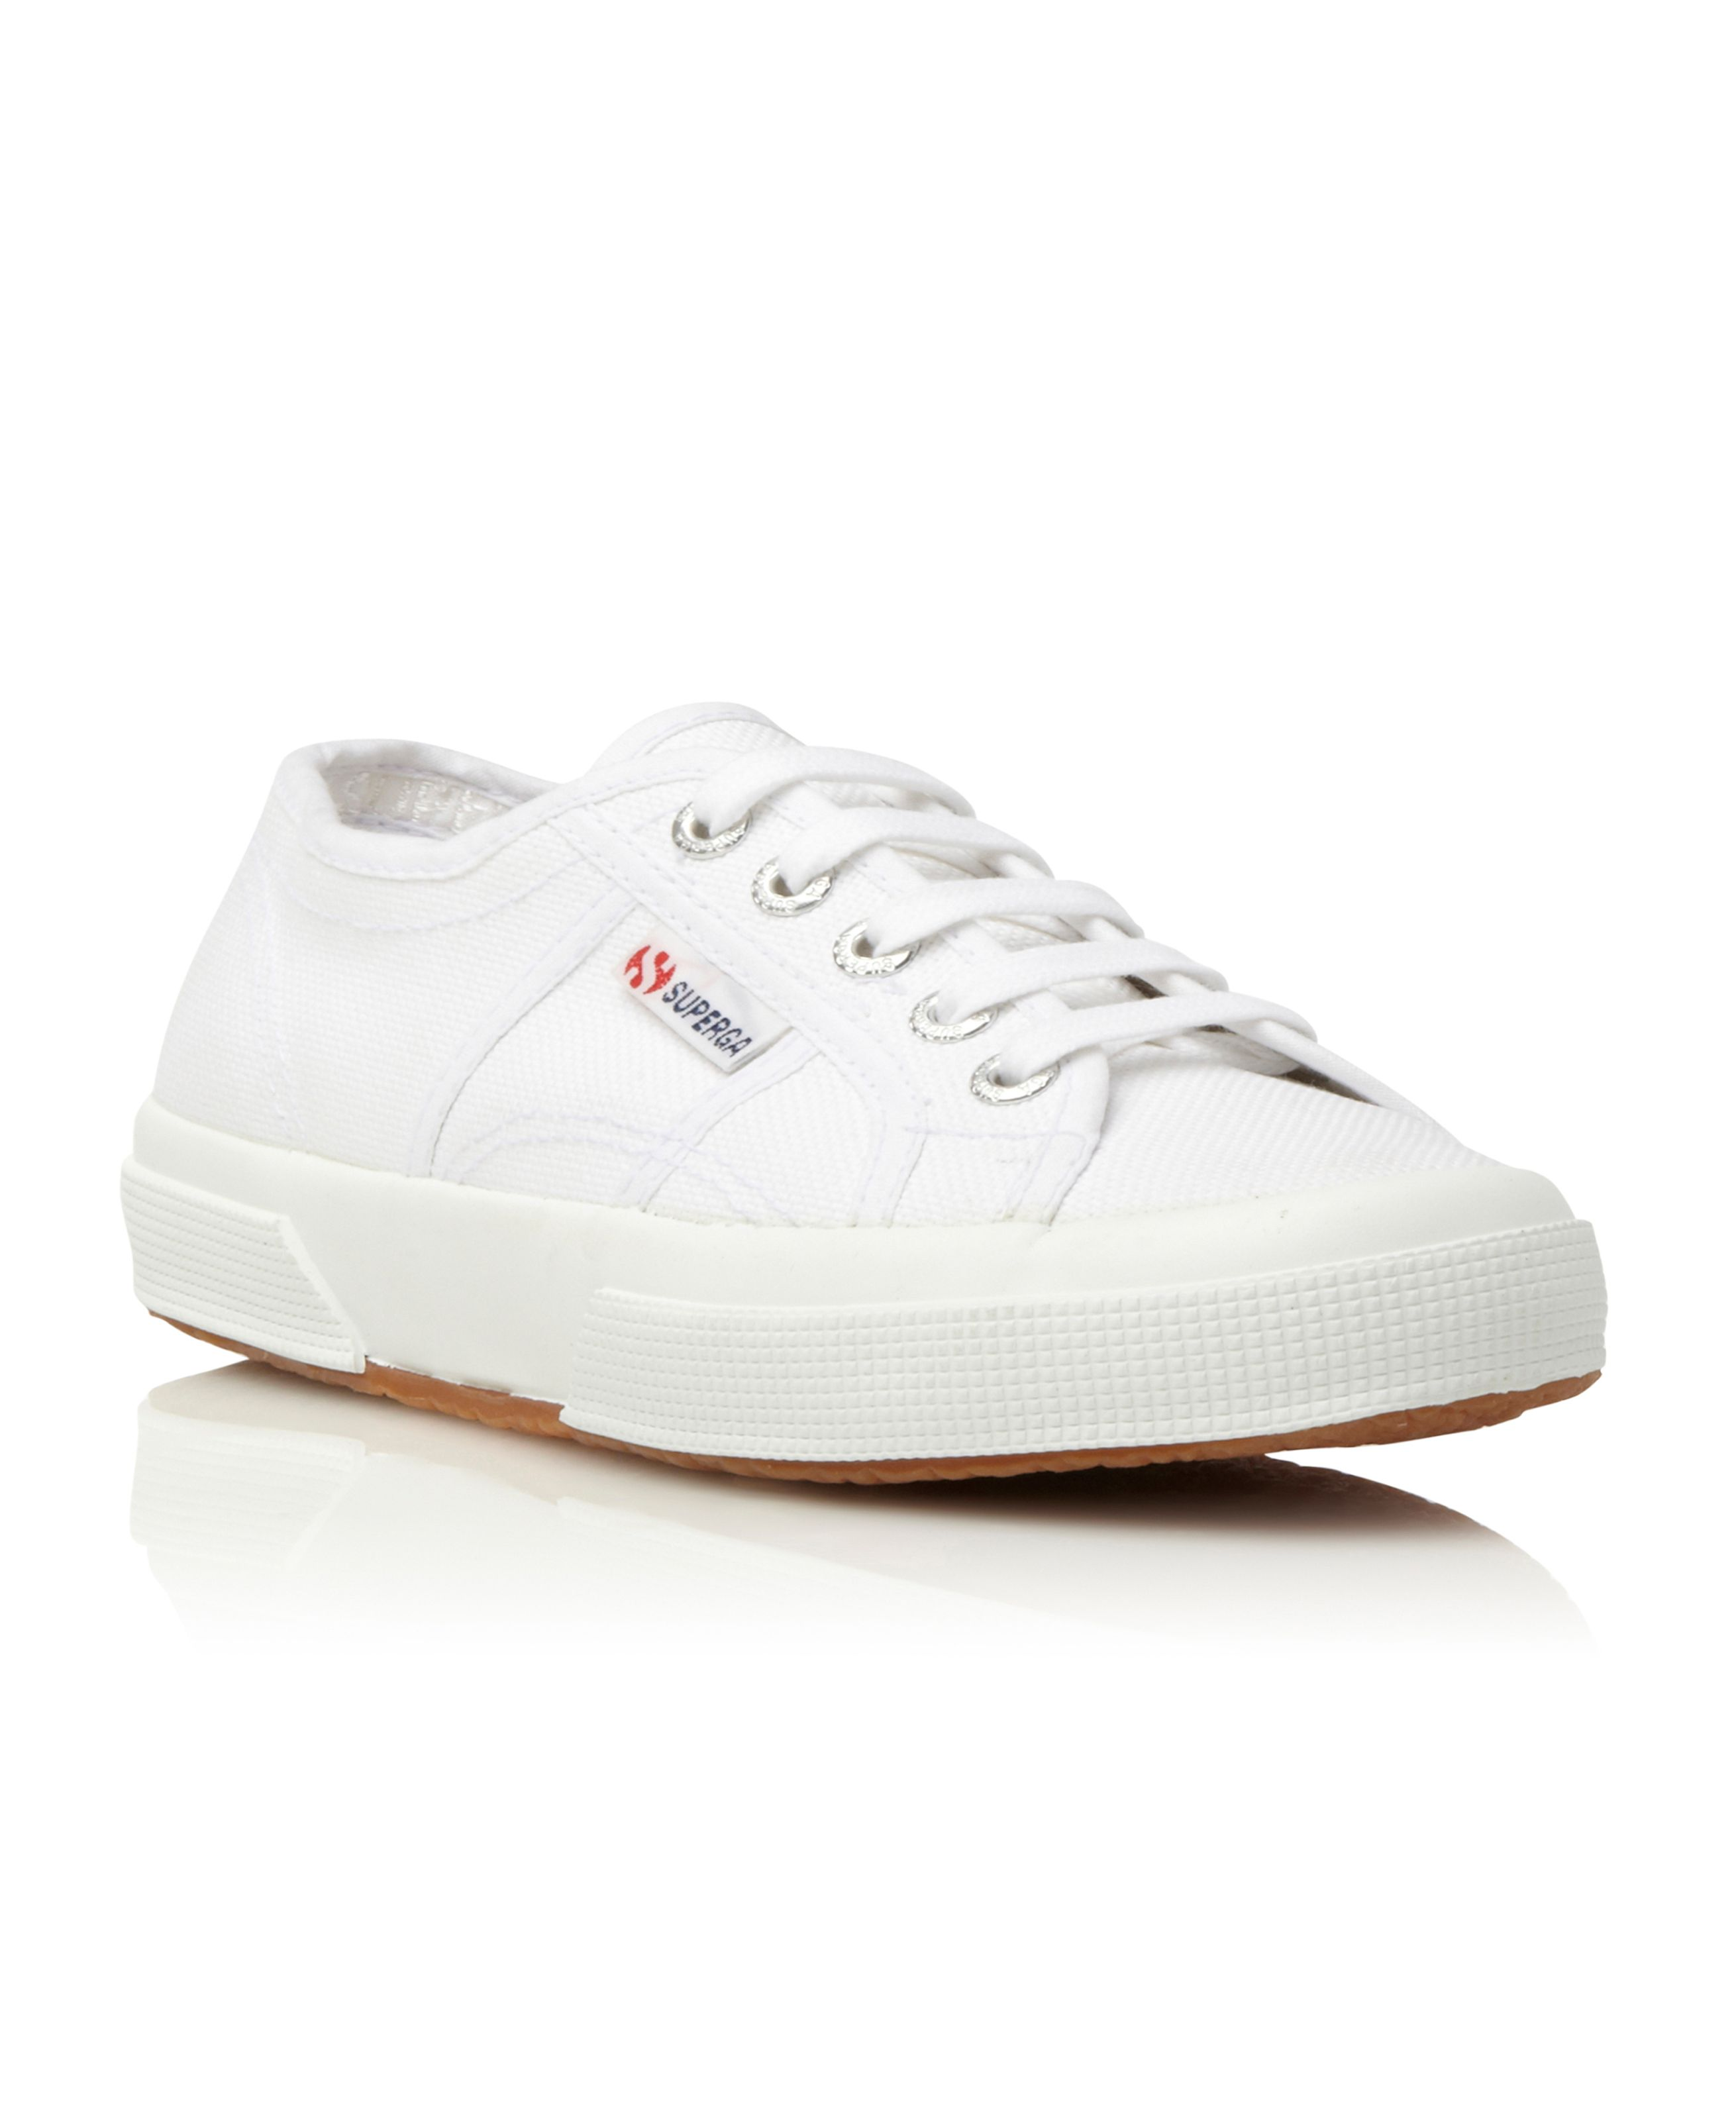 Lattitude S lace up superga trainer shoes